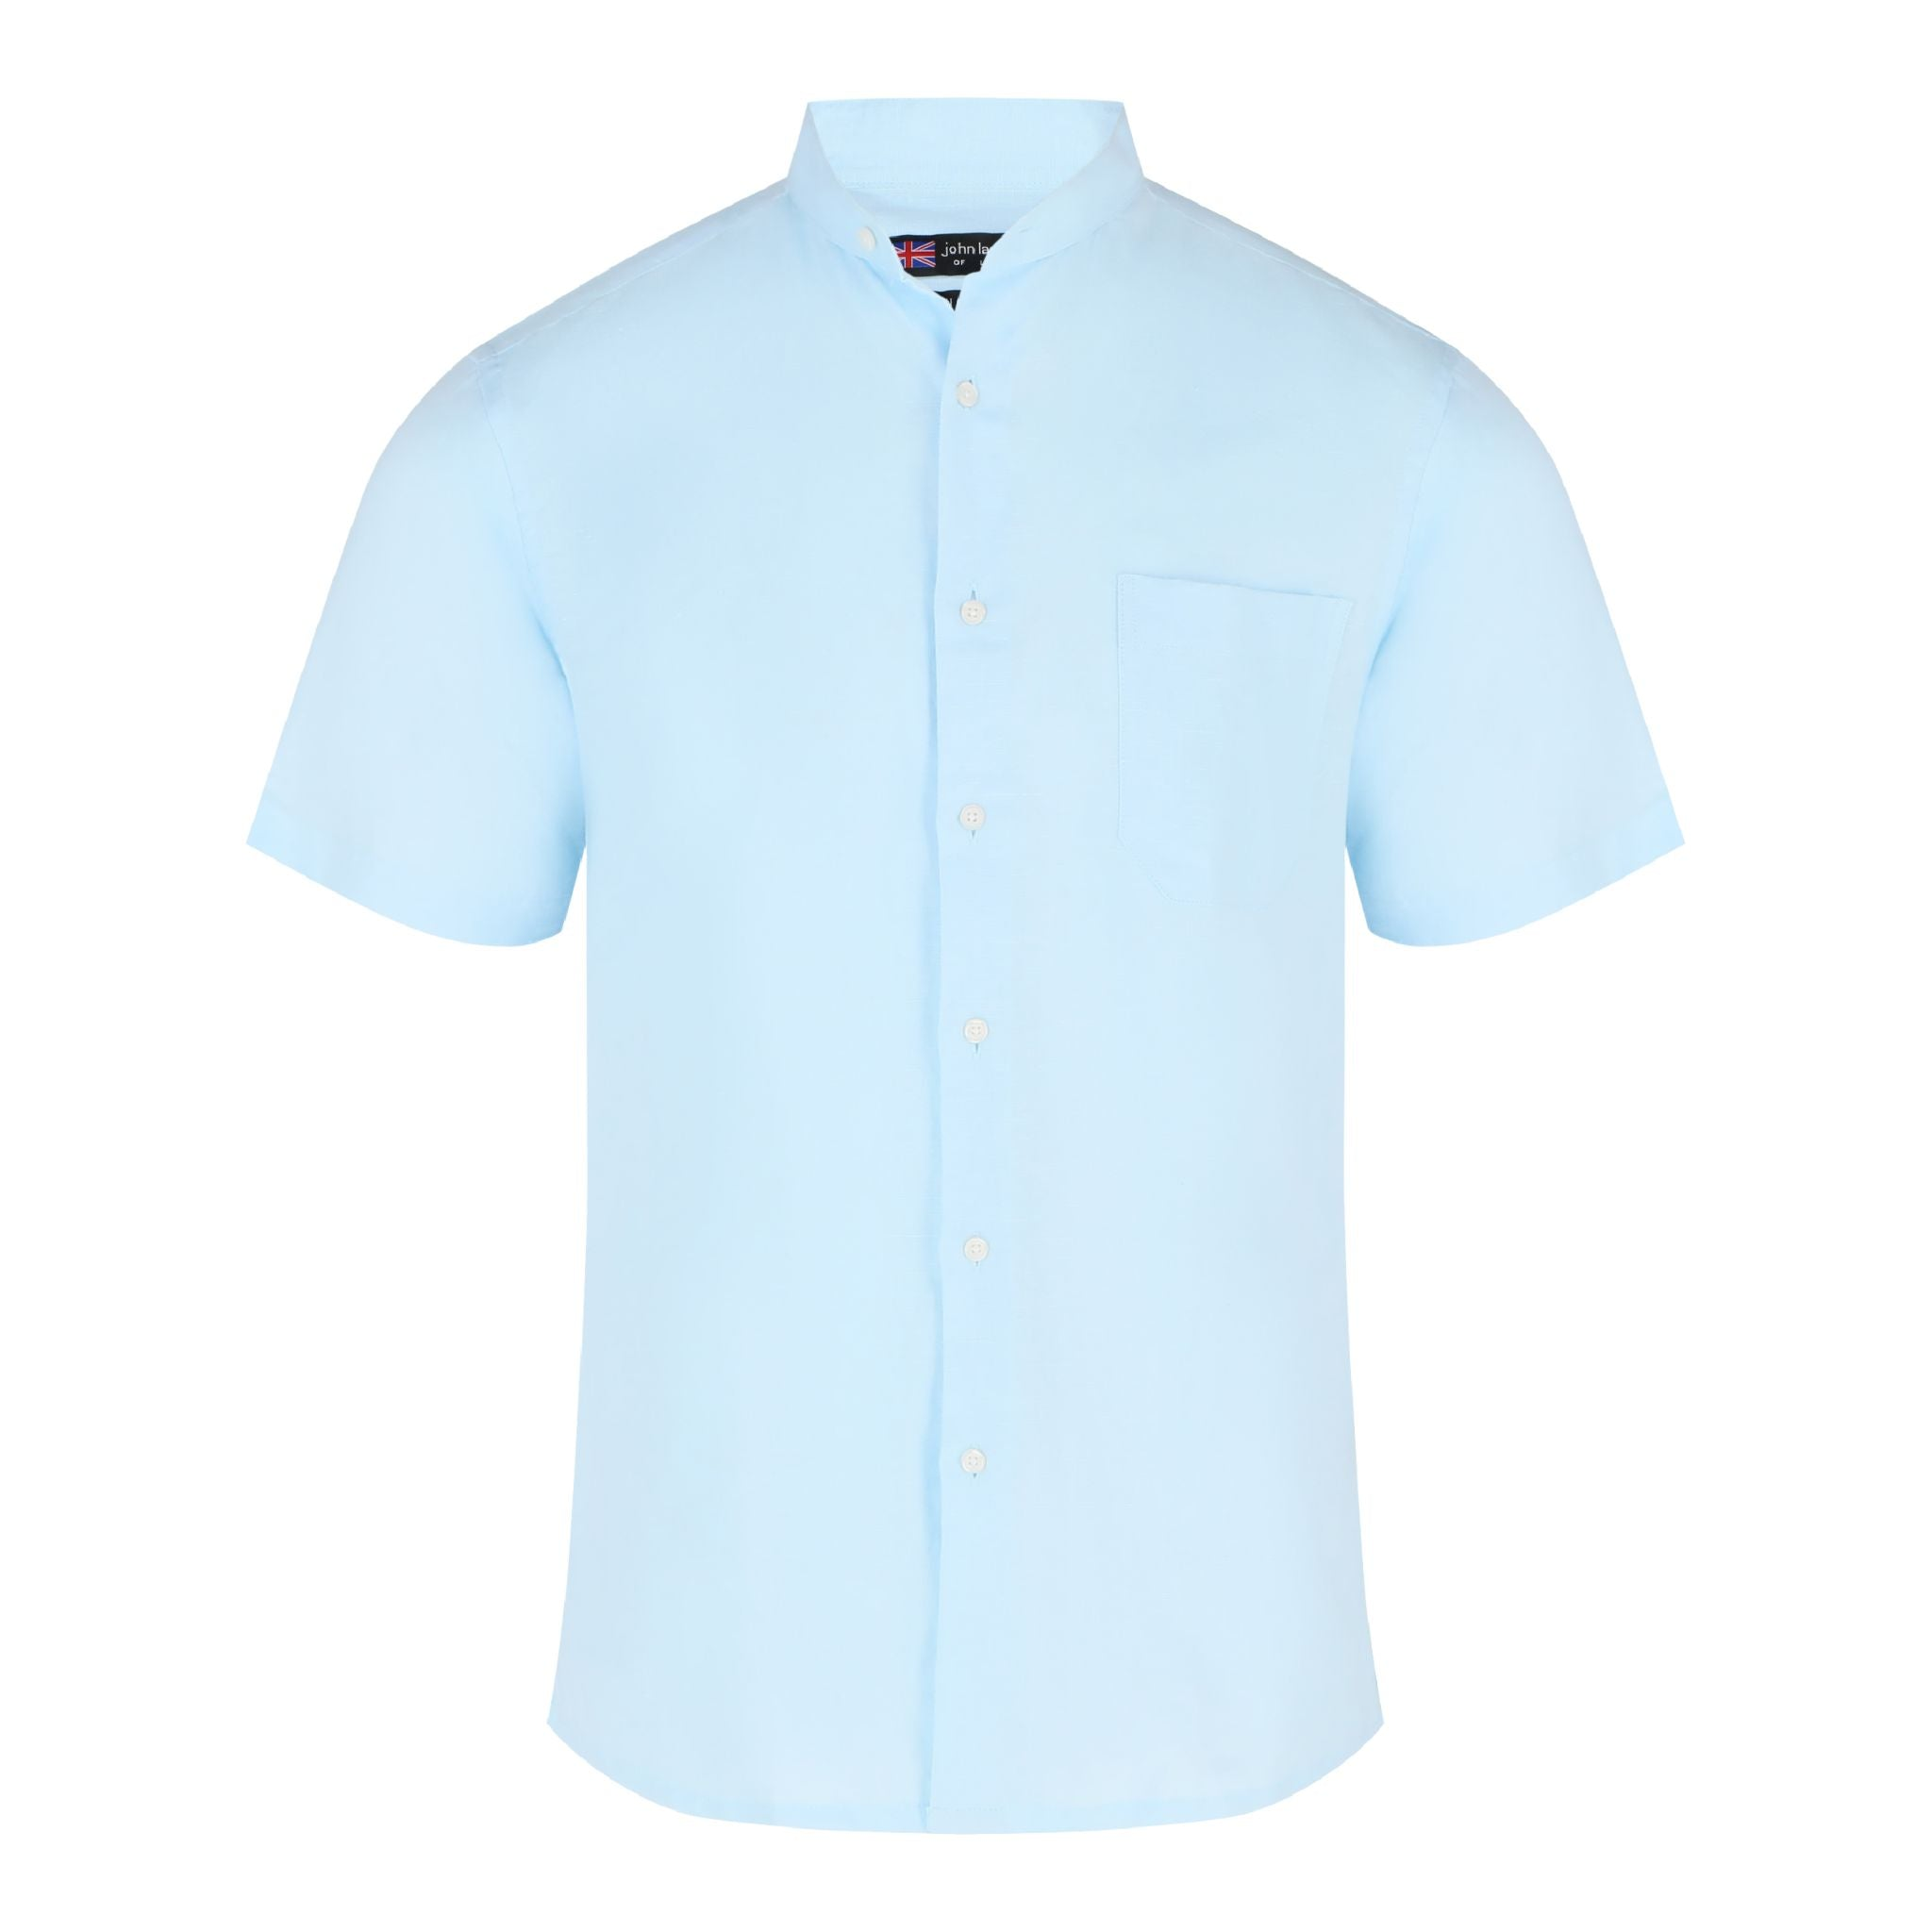 John Langford Linen Cotton Mandarin Collar Short Sleeve Casual Shirt - Light Blue